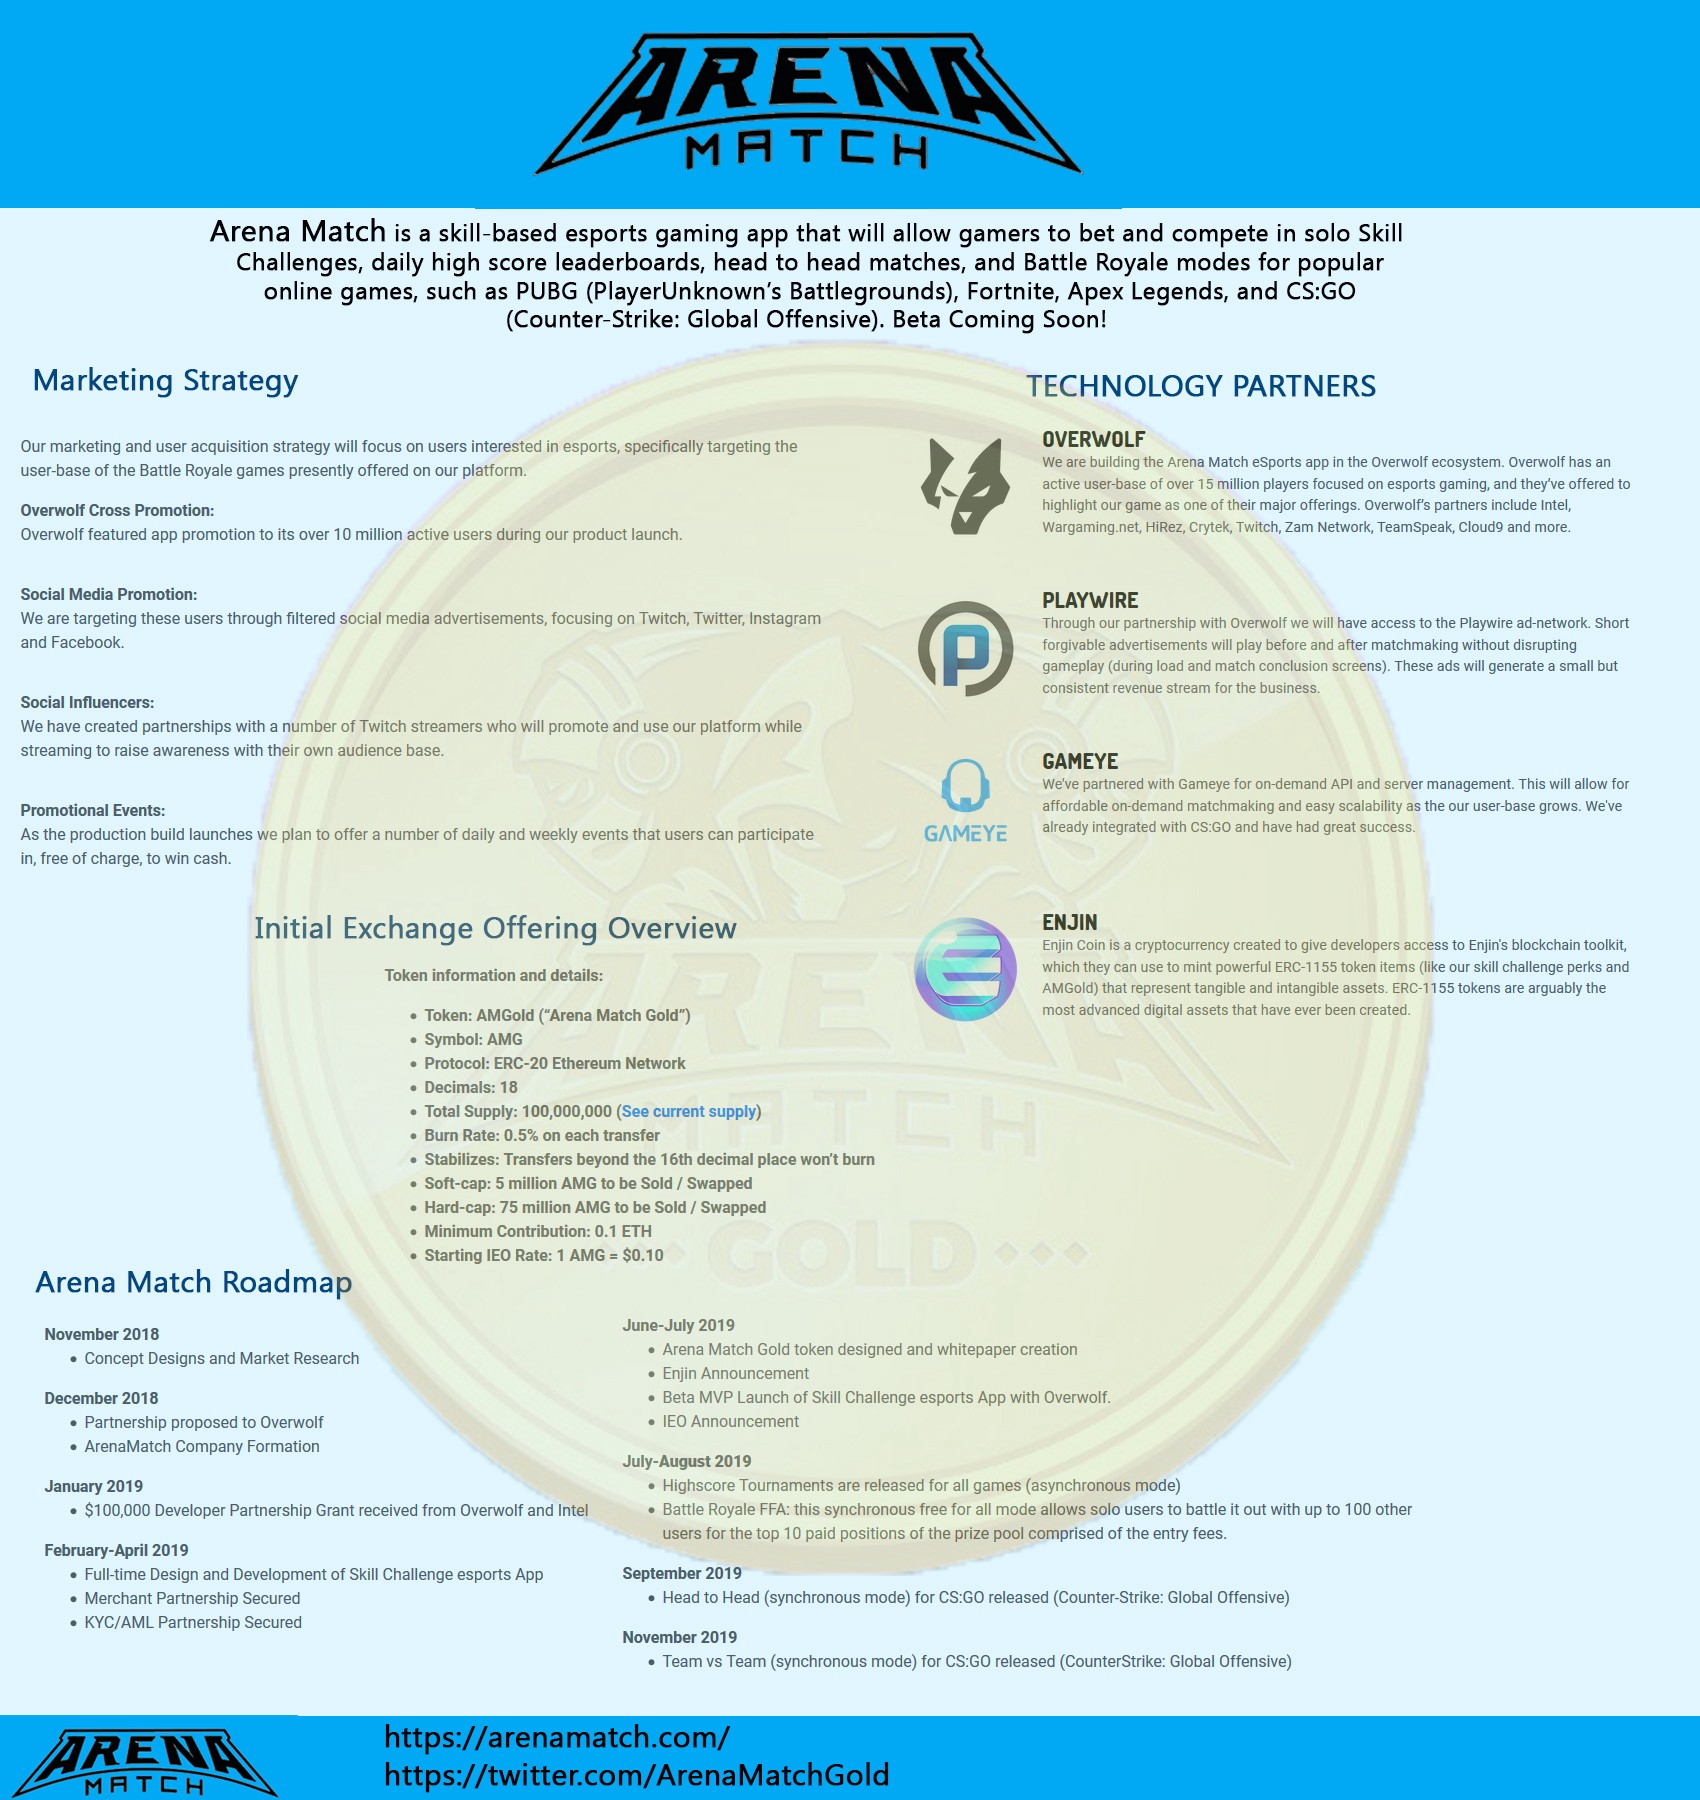 ARENA MATCH: Skill-based esports Gaming App(infography)